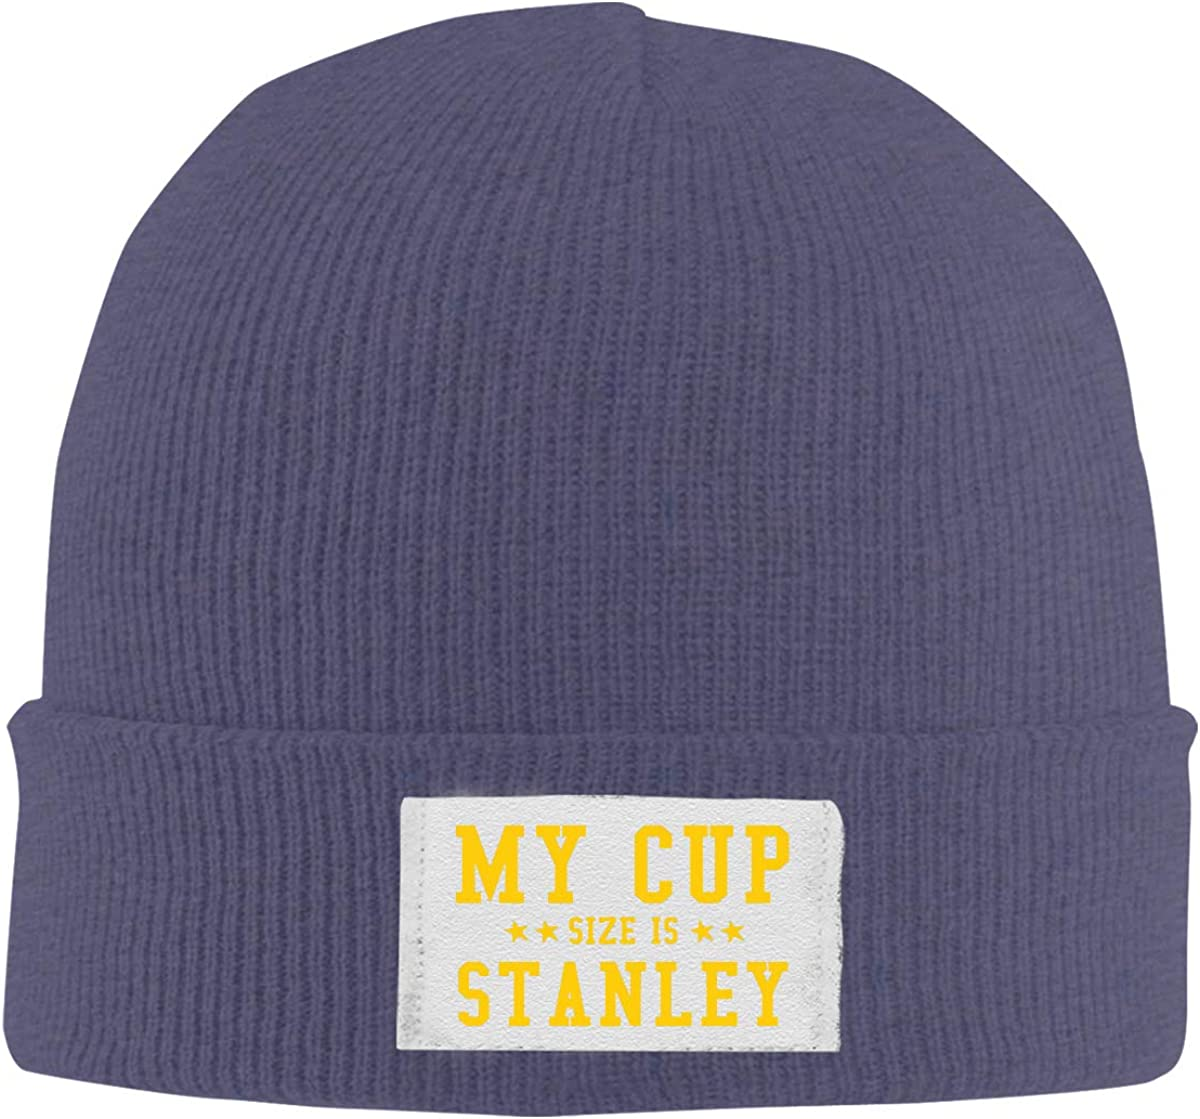 My Cup Size is Stanley Top Level Beanie Men Women Unisex Stylish Slouch Beanie Hats Black